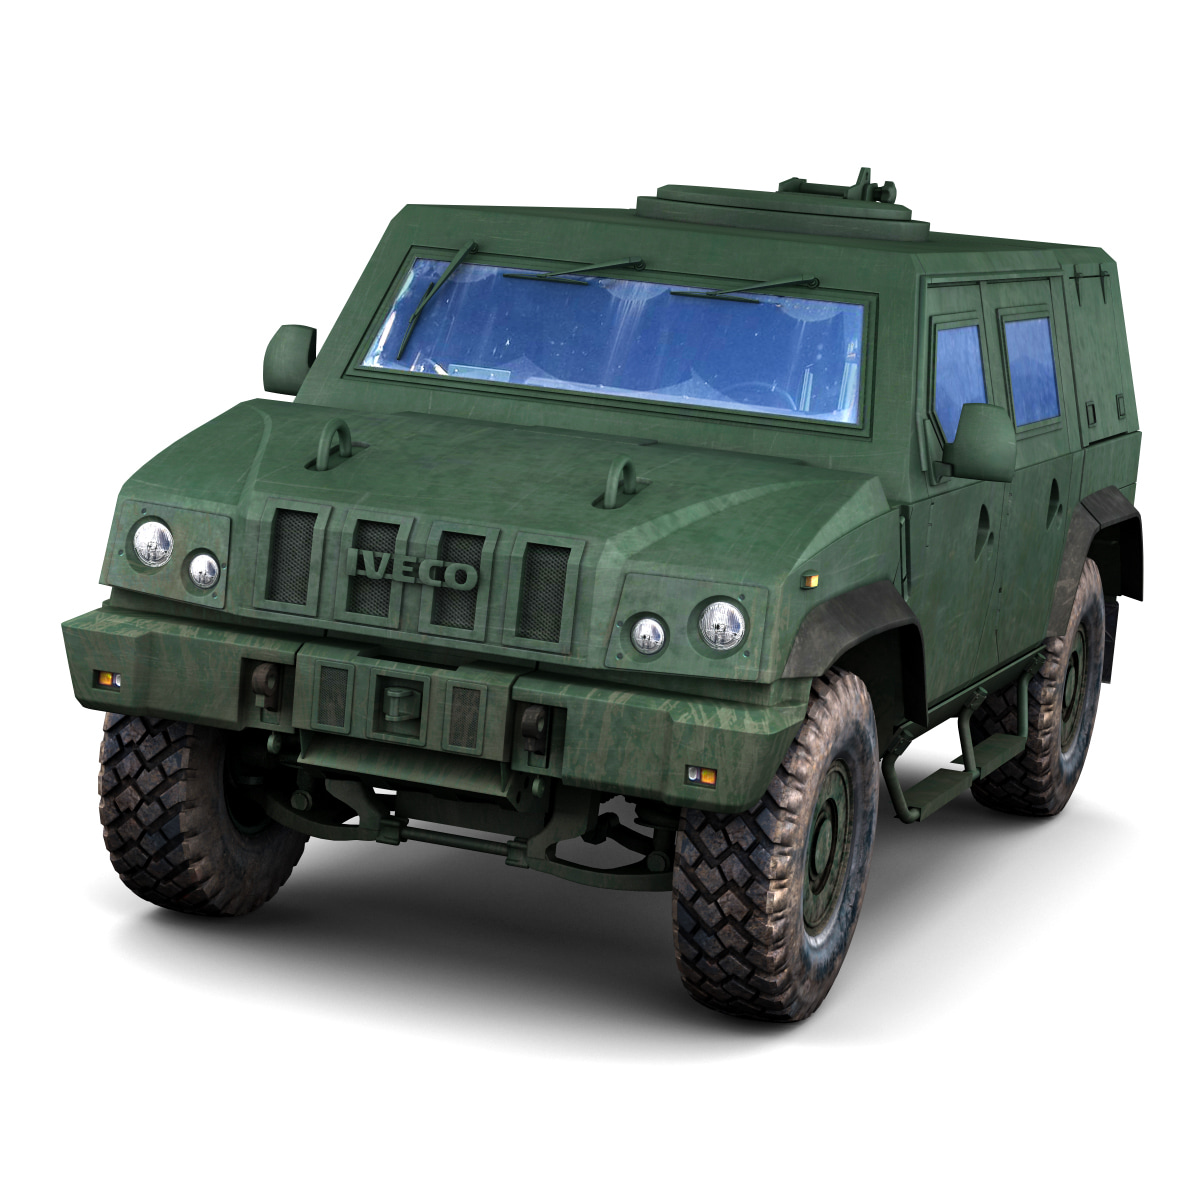 Infantry_Mobility_Vehicle_Iveco_LMV_001.jpg